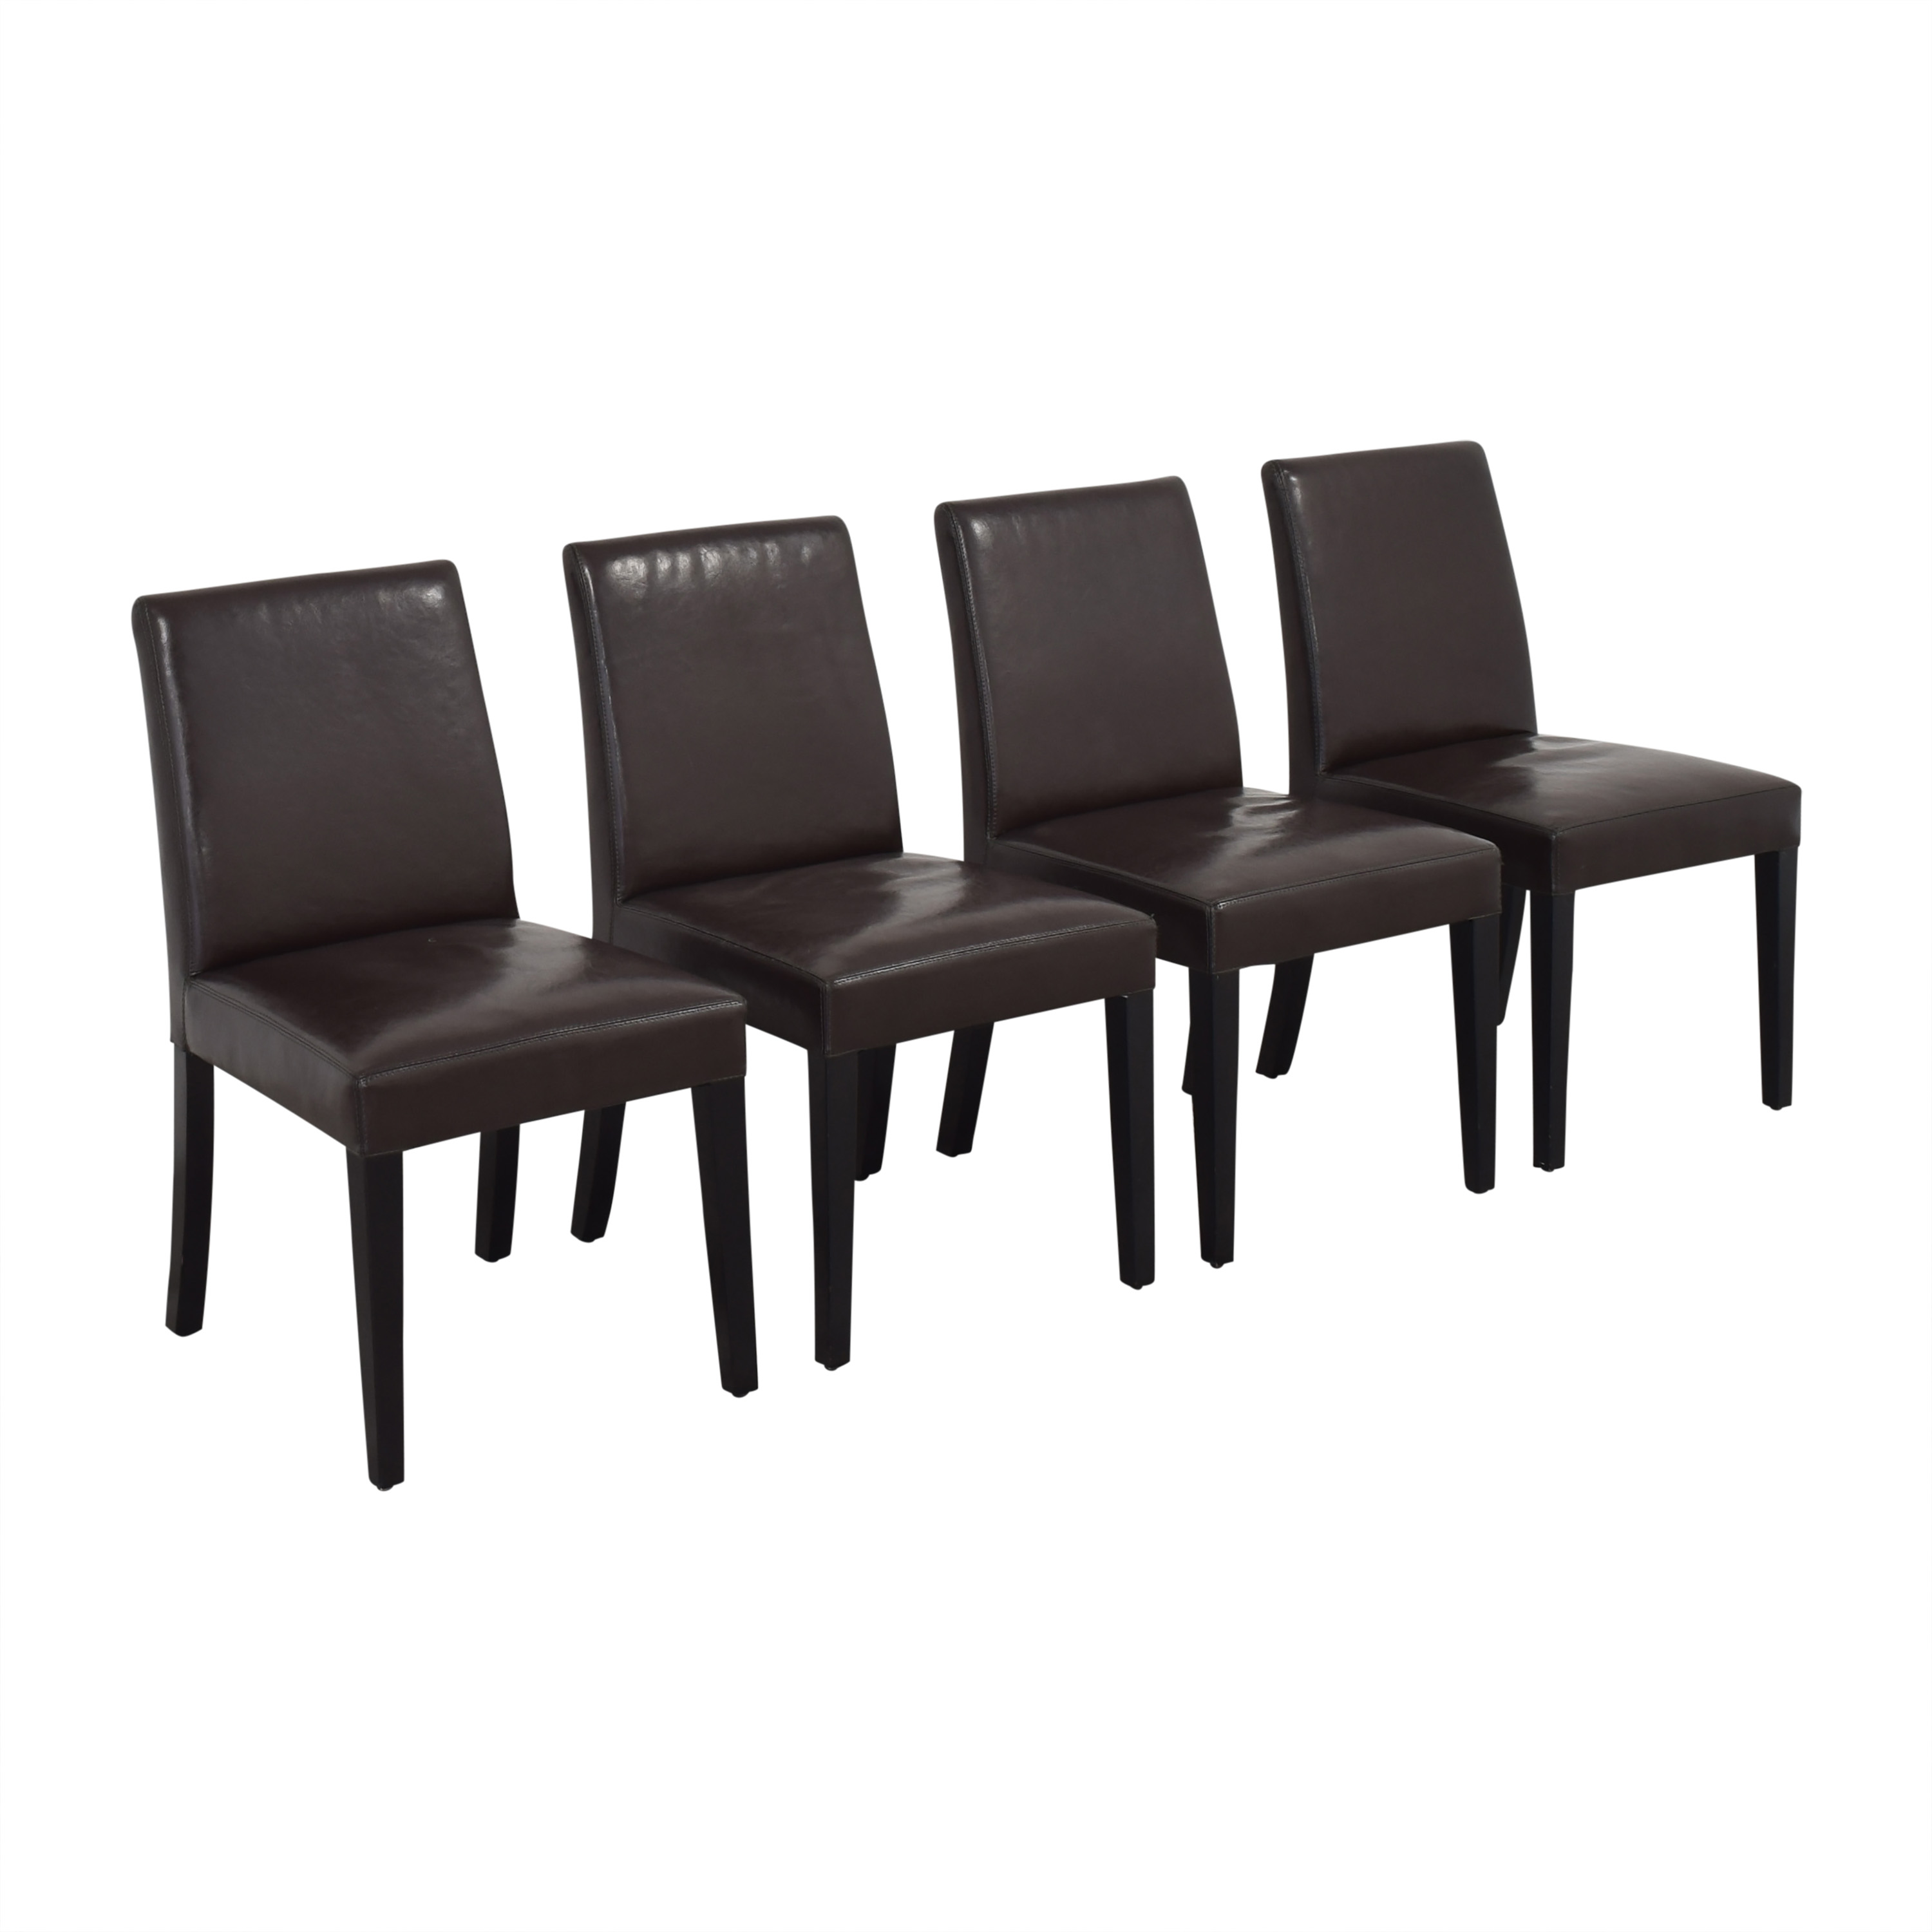 Crate & Barrel Crate & Barrel Pullman Side Chairs